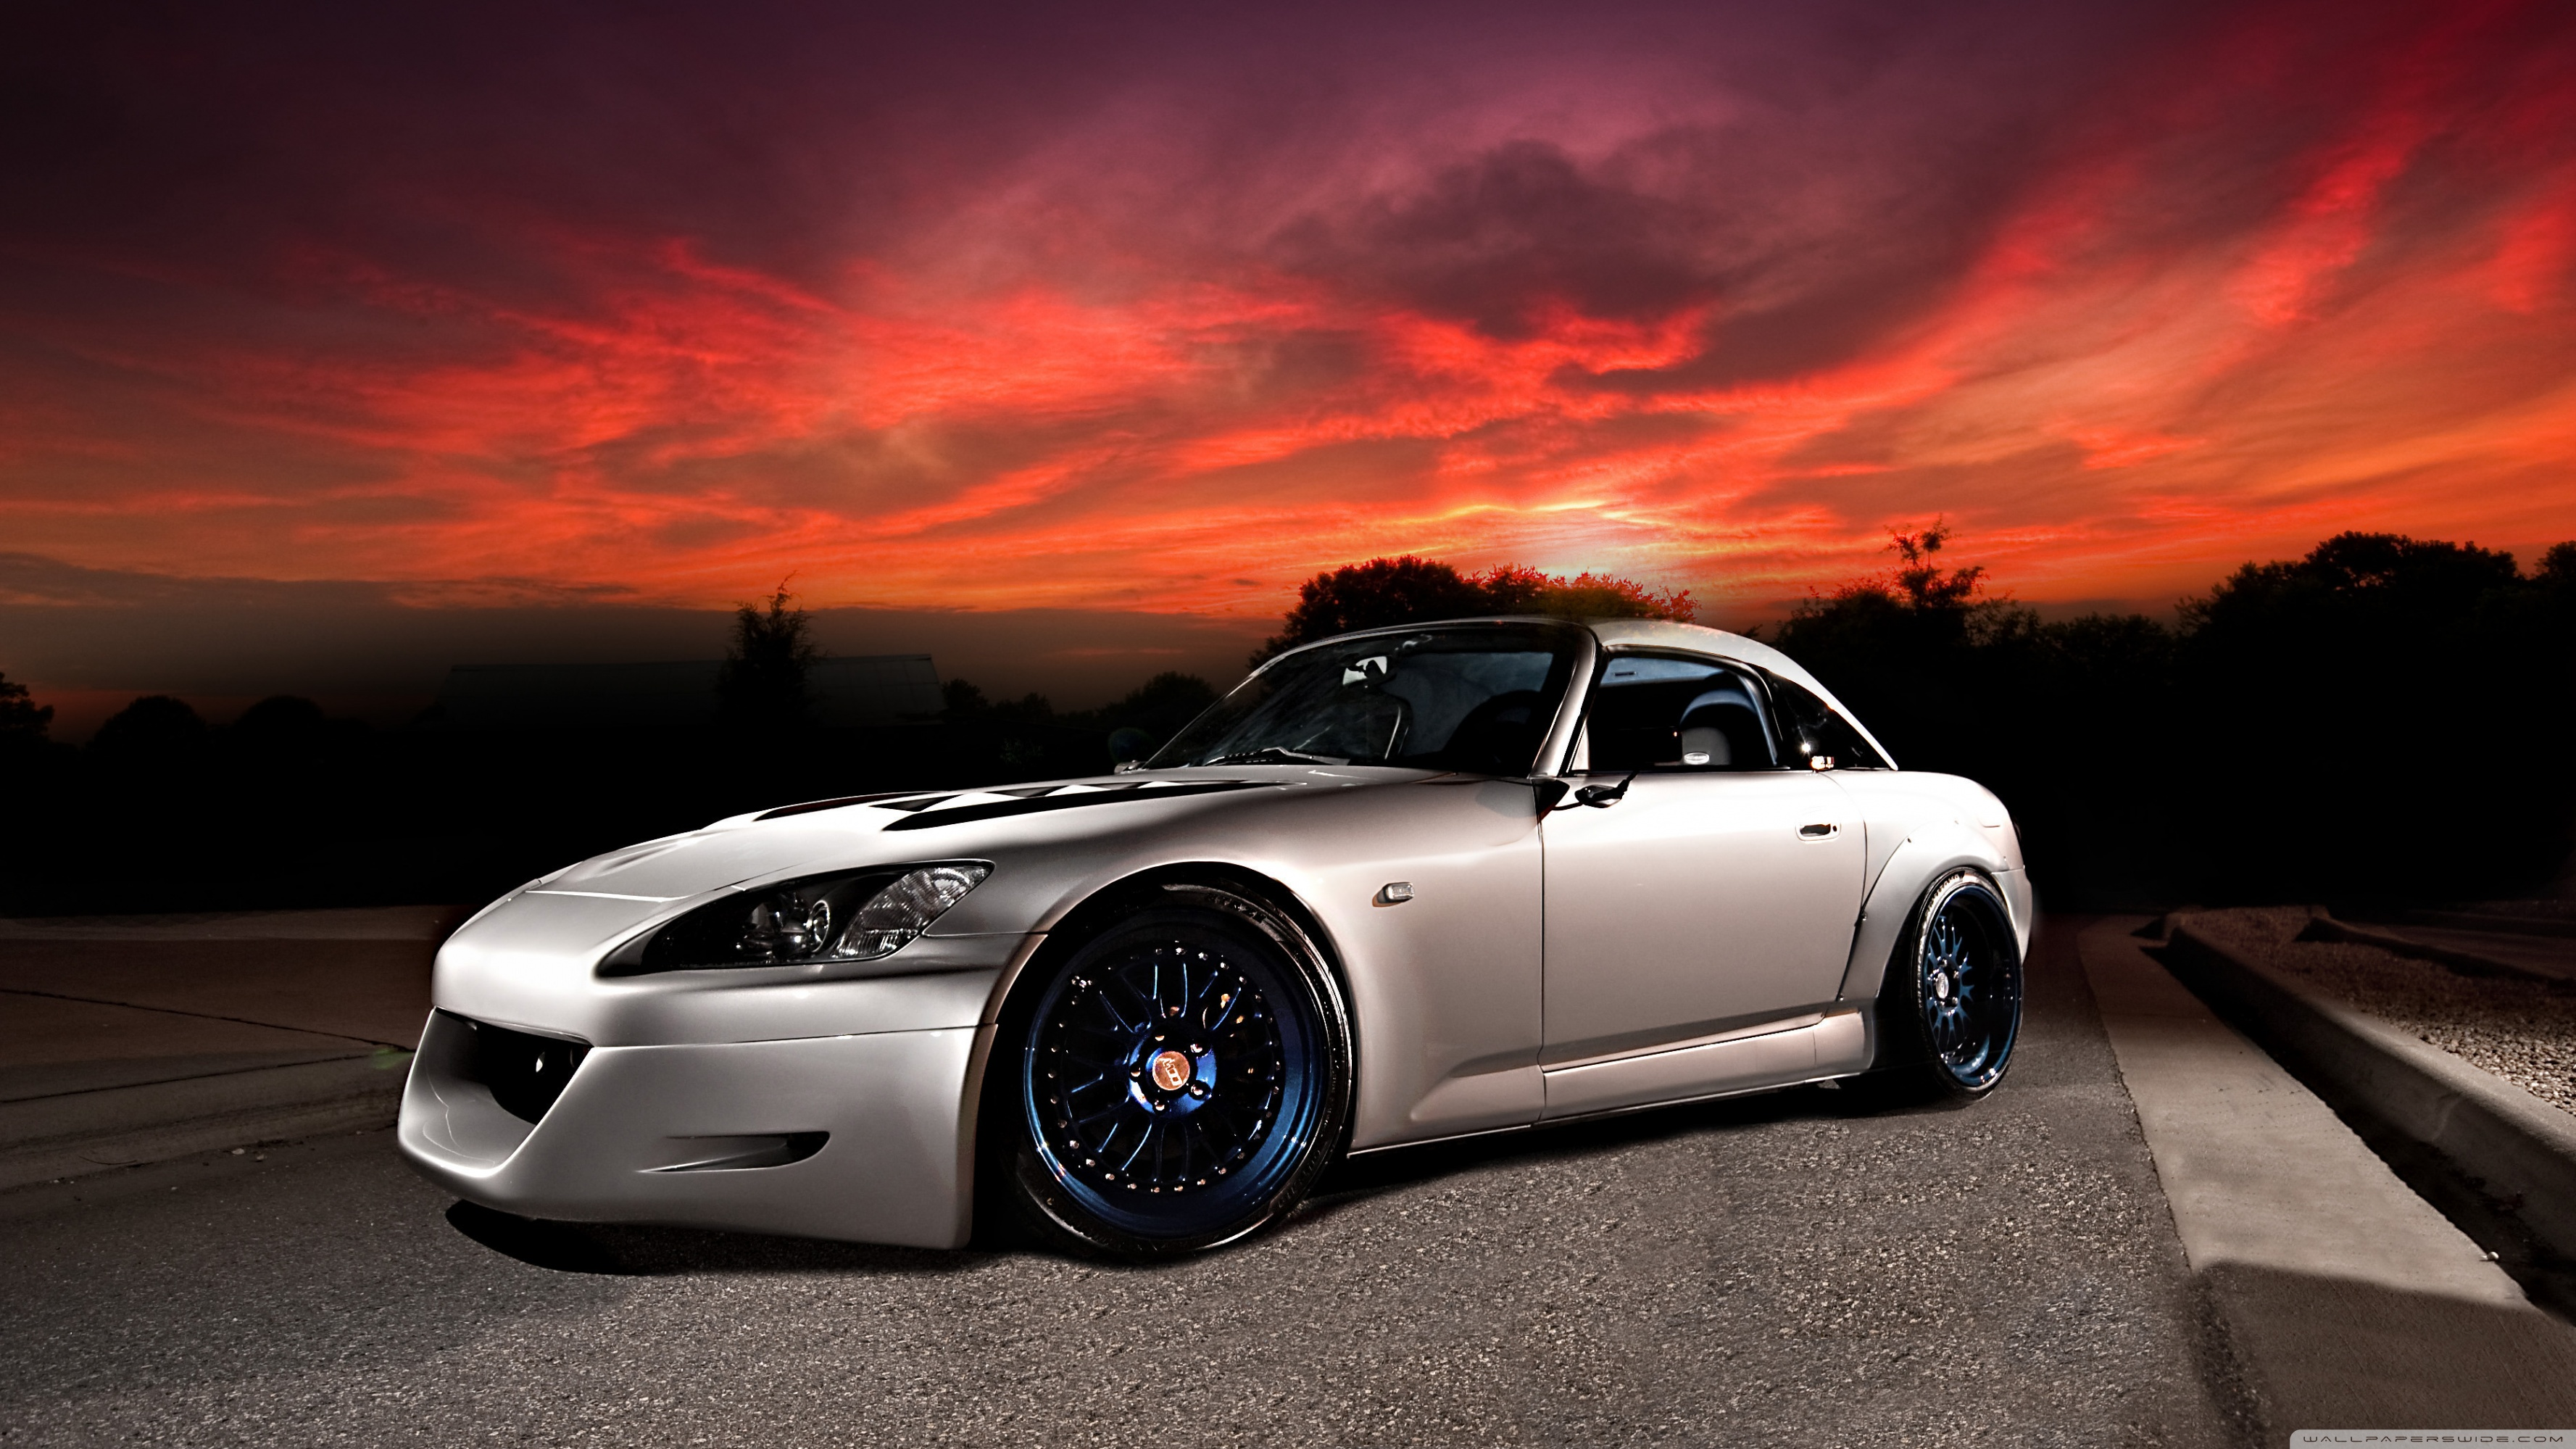 3554x1999 - Honda S2000 Wallpapers 16